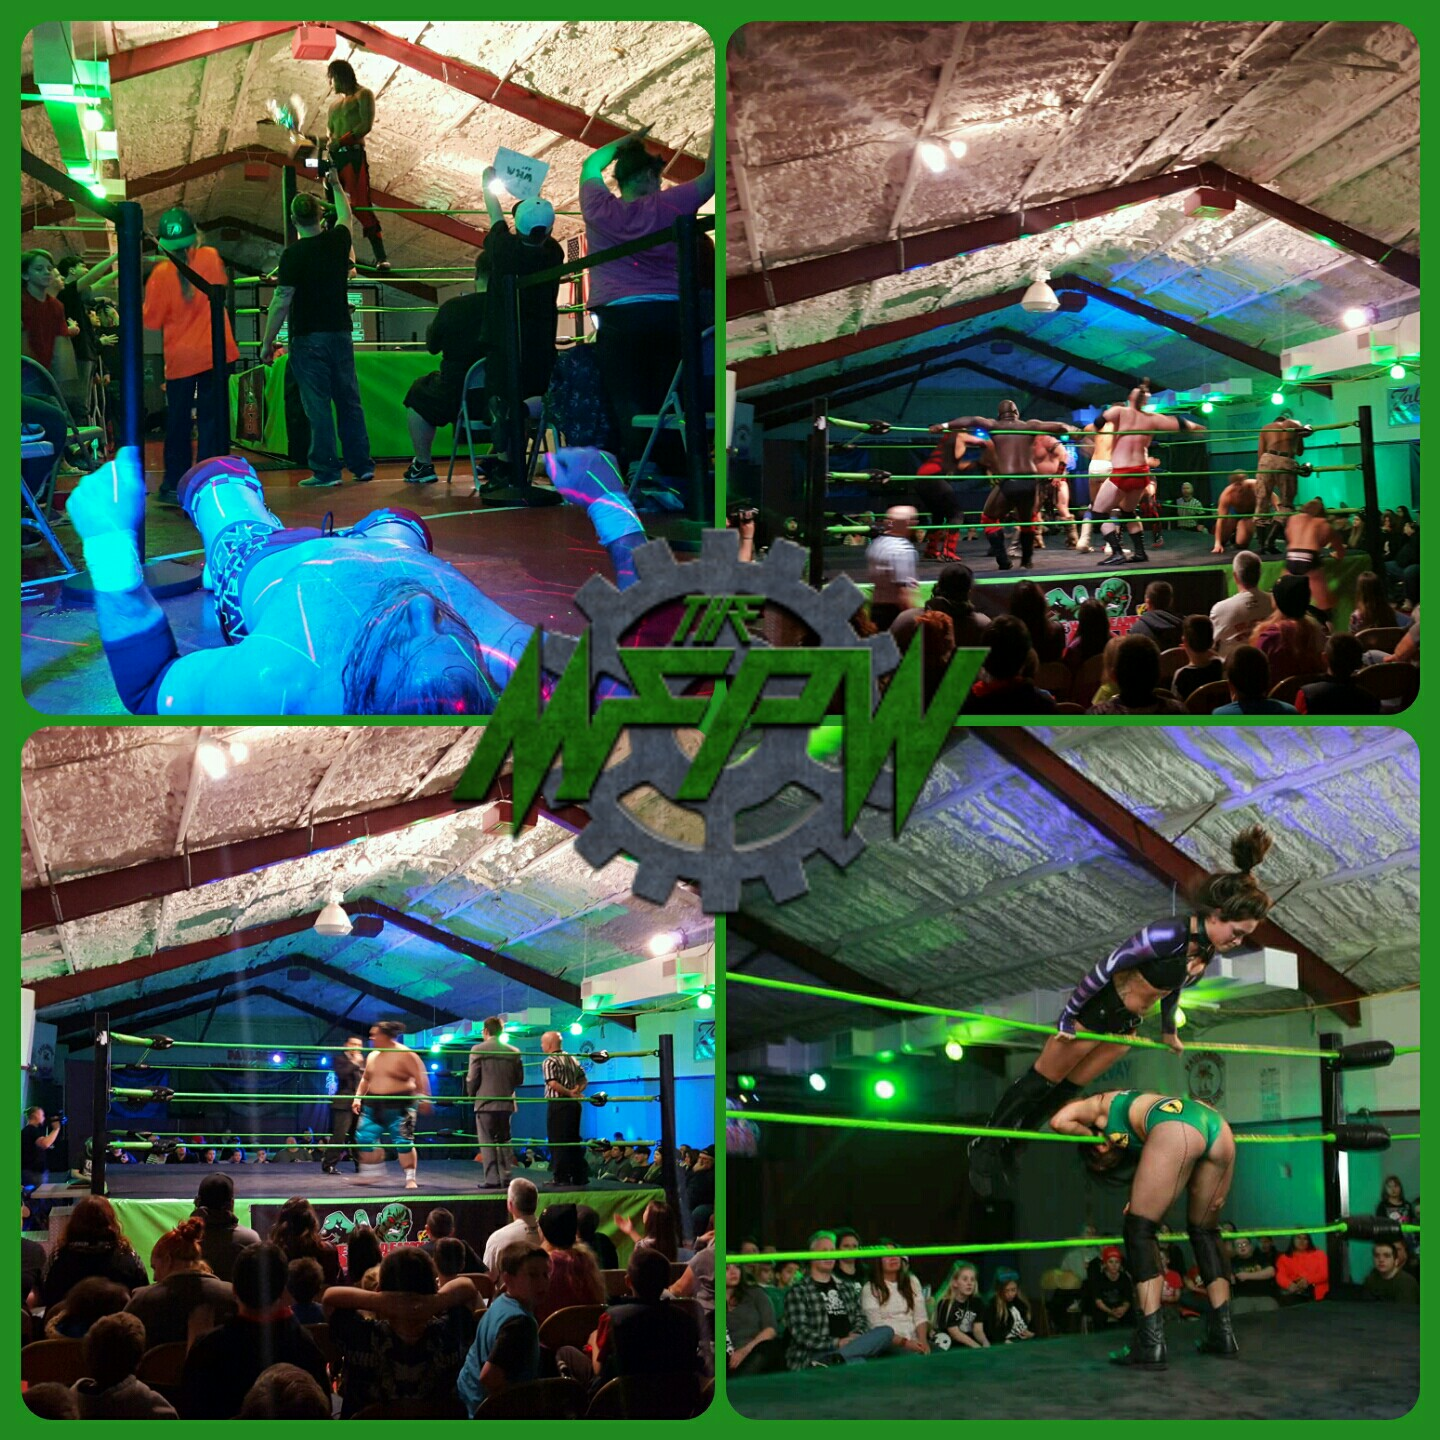 The MFPW returns to The MFPW Arena located in The WOrld Famous Monster Factory in Paulsboro, New Jersey with Fan Appreciation Night! All tickets purchased online are half off!